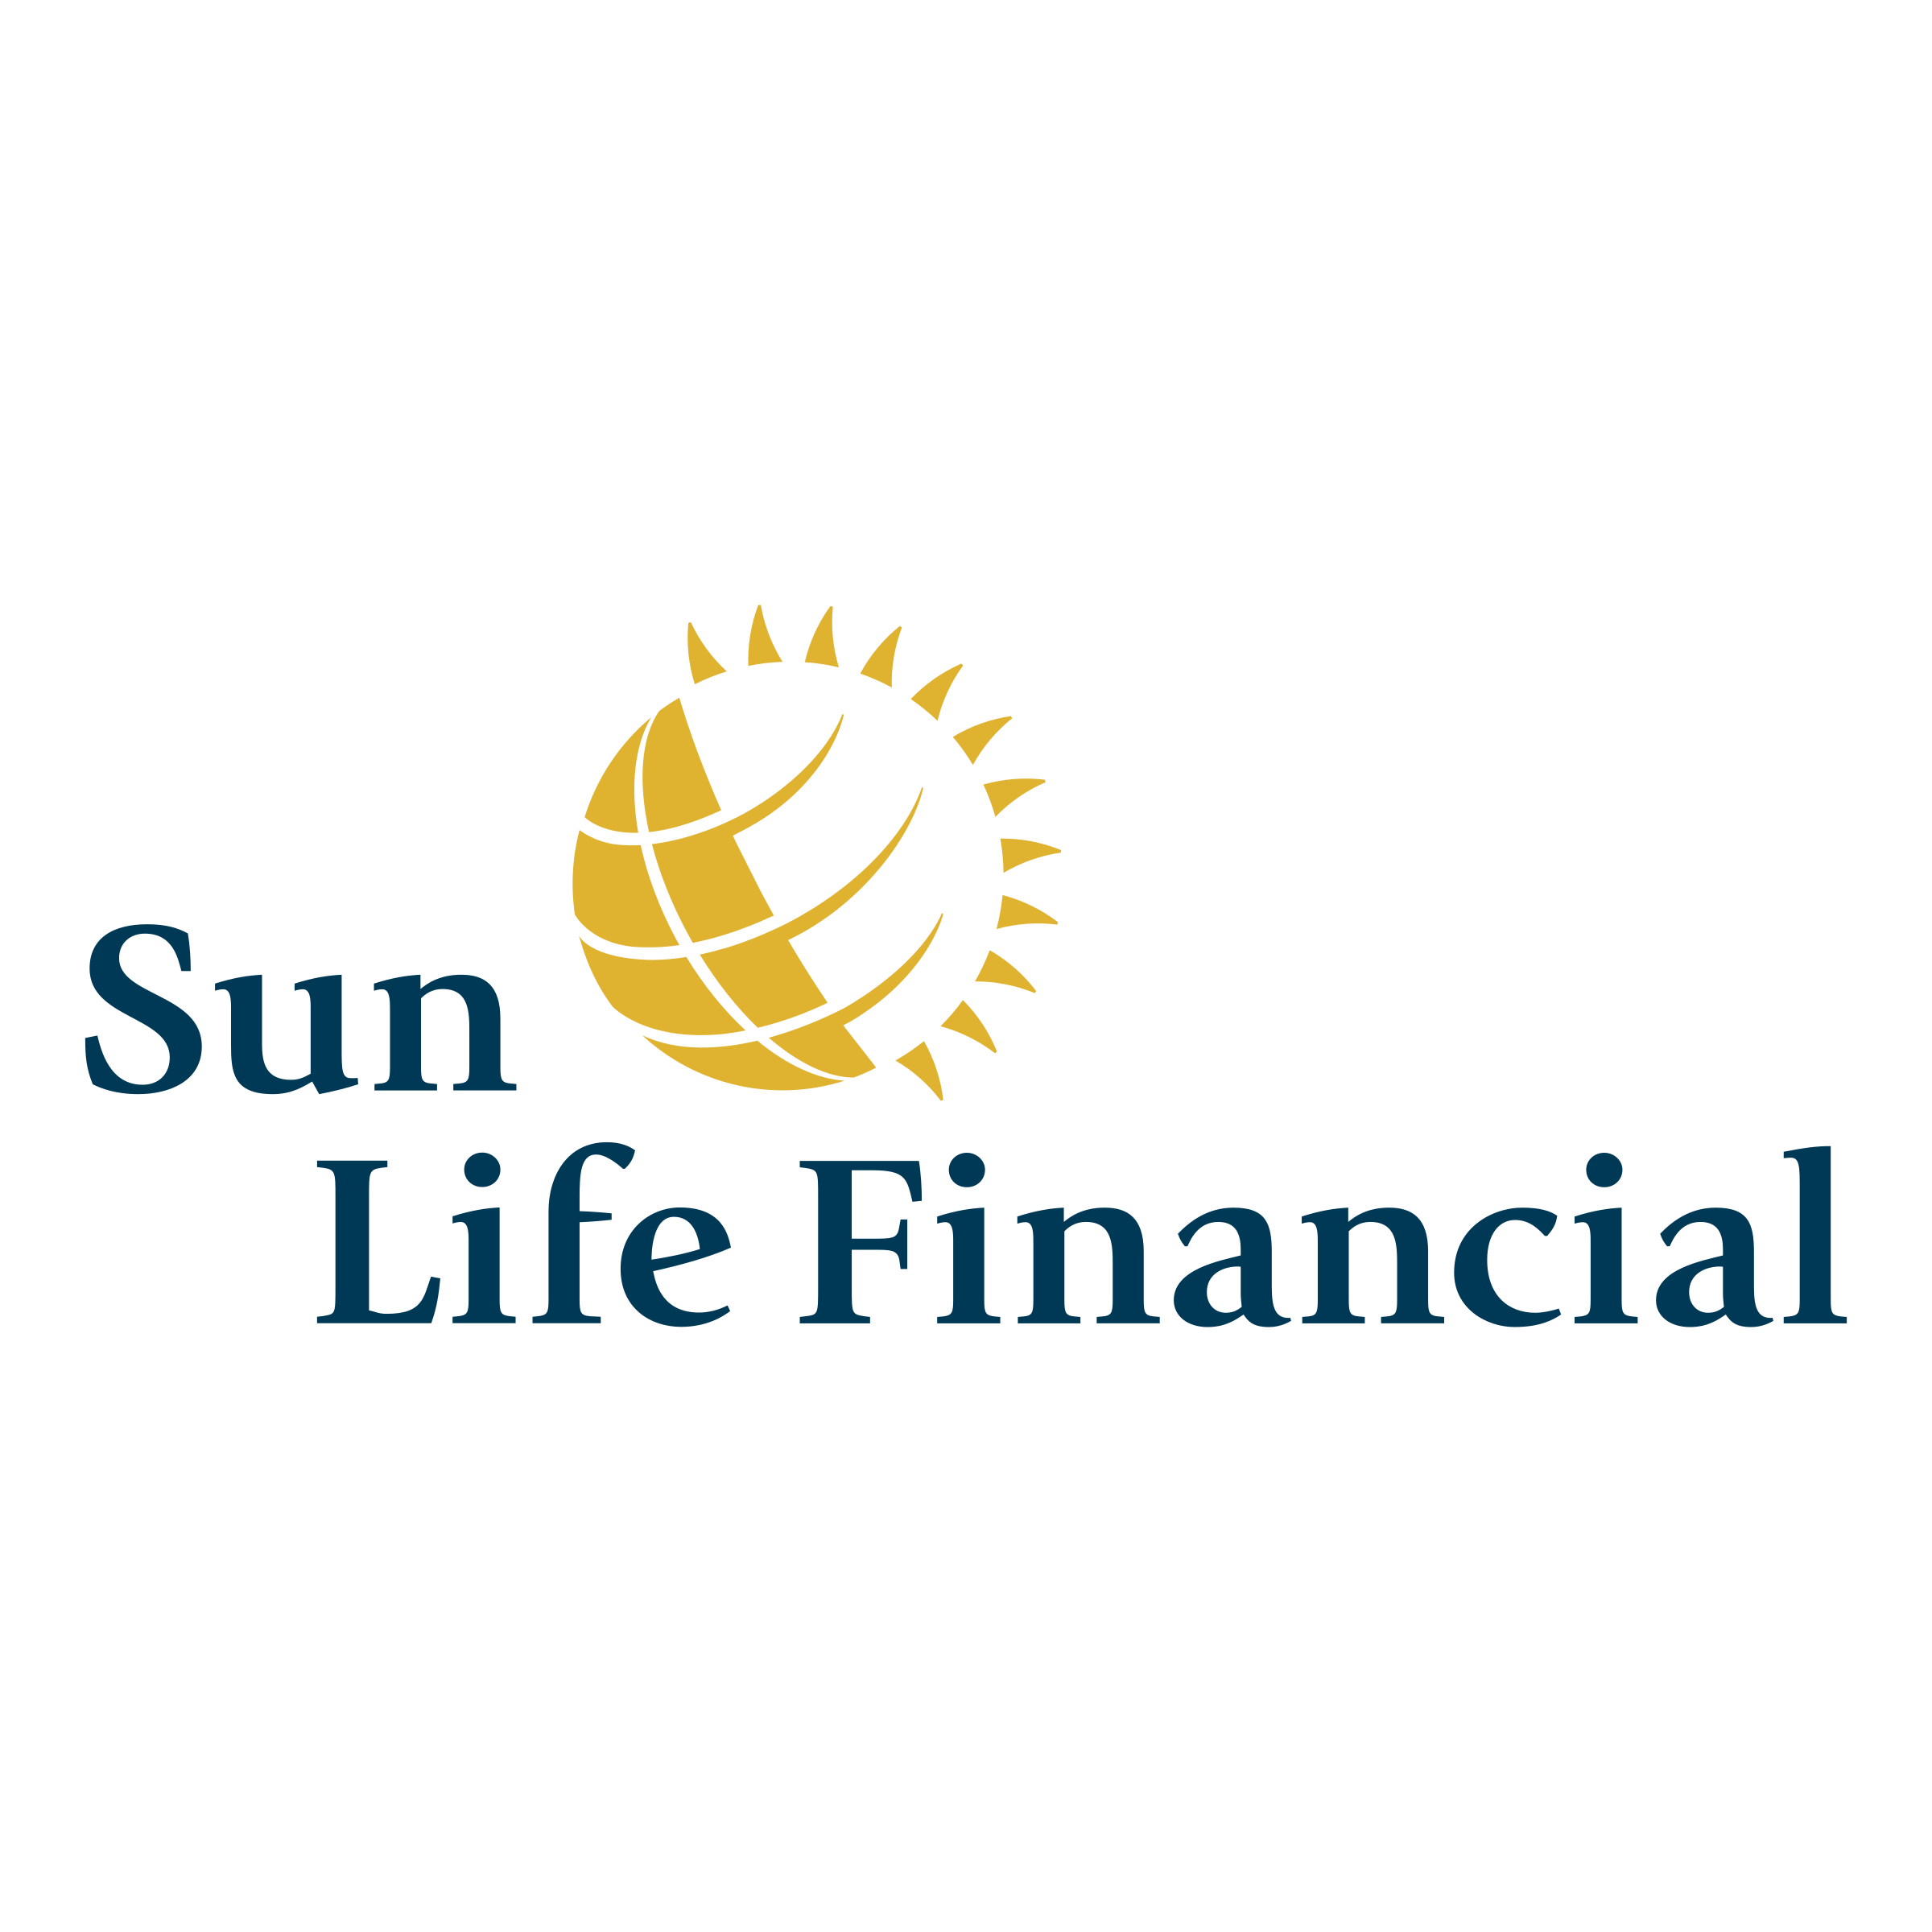 sun-life-financial-1-logo-png-transparent.png